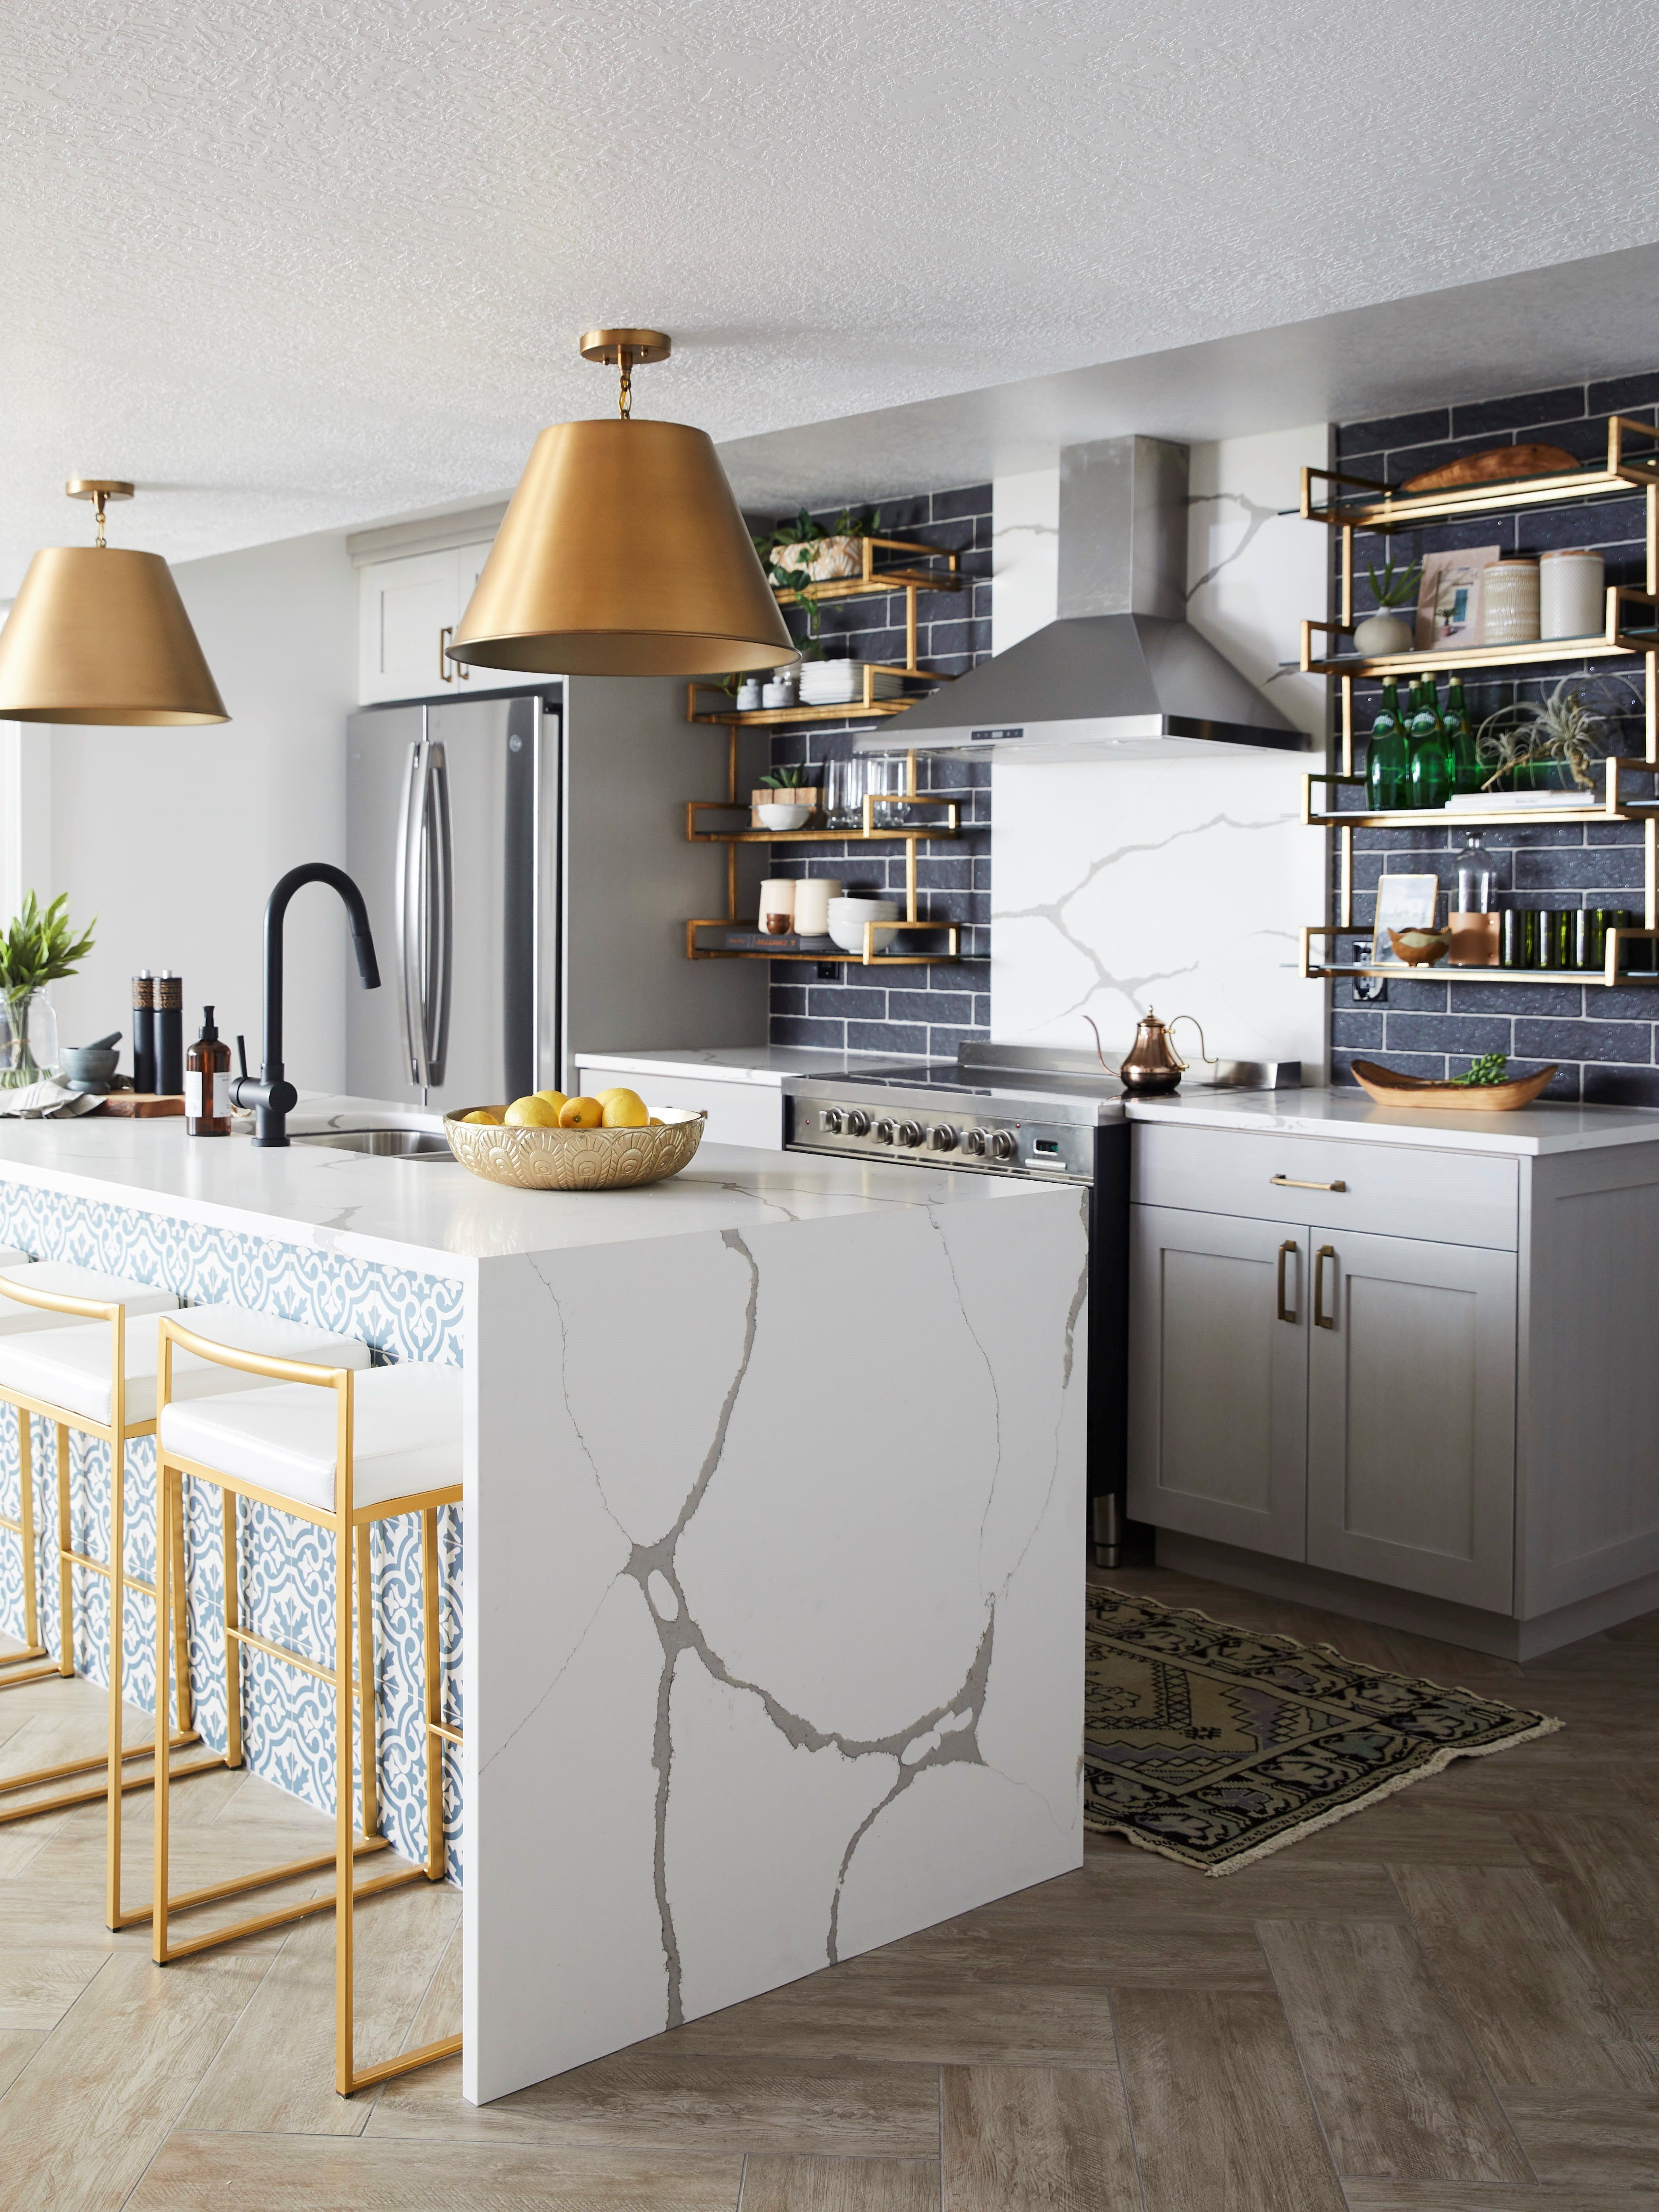 loving the gold accents in this kitchen gold hardware marble countertop waterfall cou on kitchen remodel gold hardware id=61176